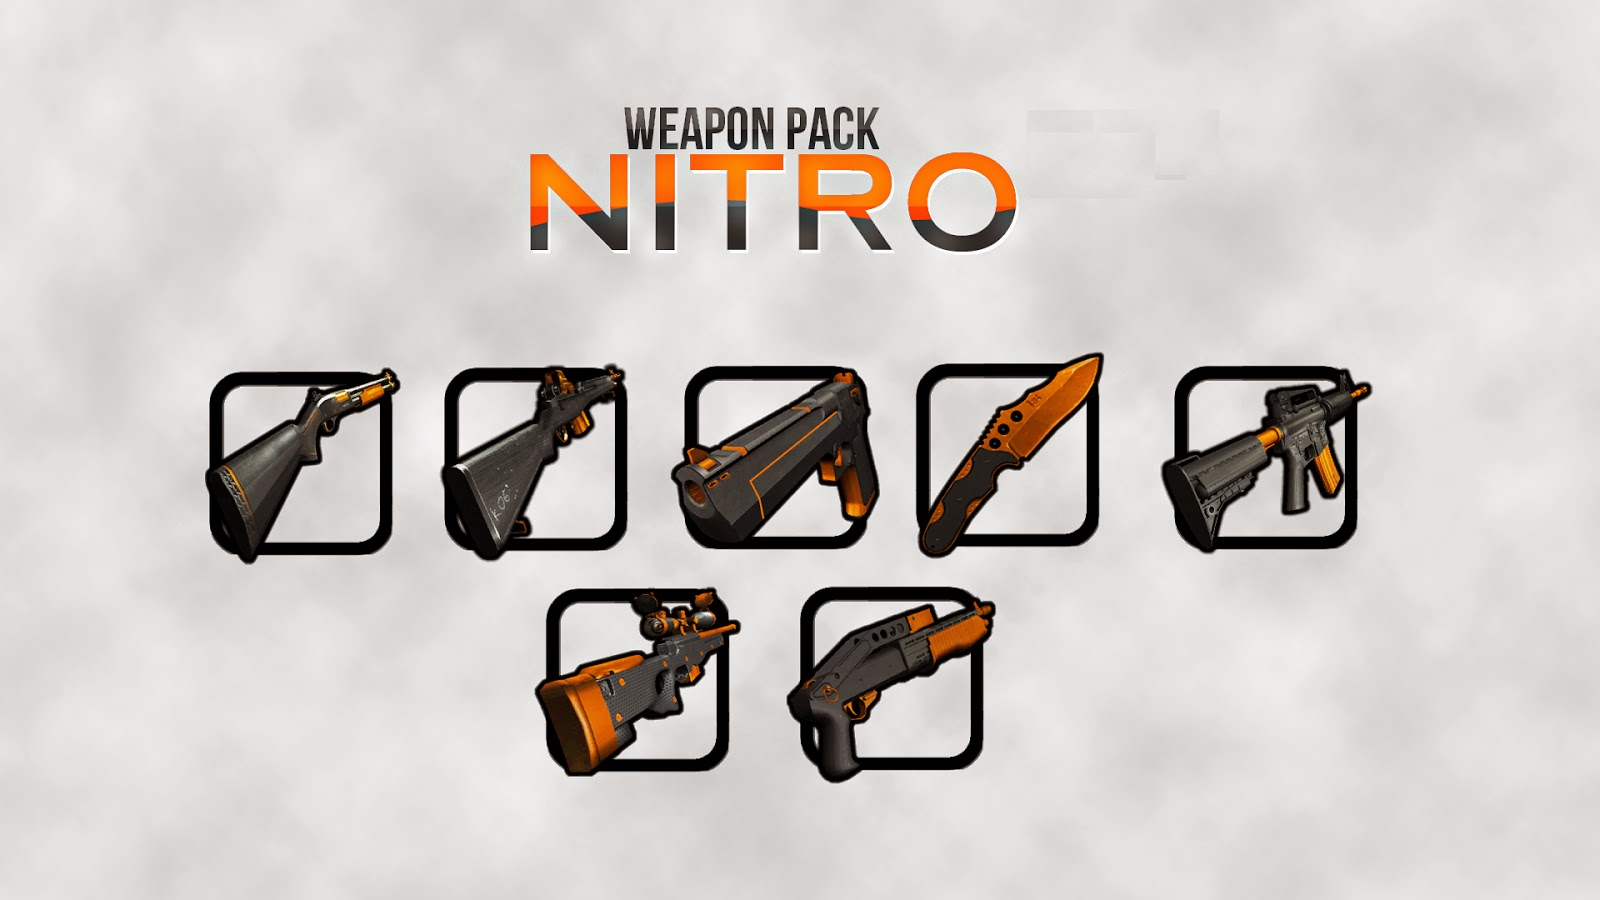 Weapon Pack Nitro Gta San Andreas